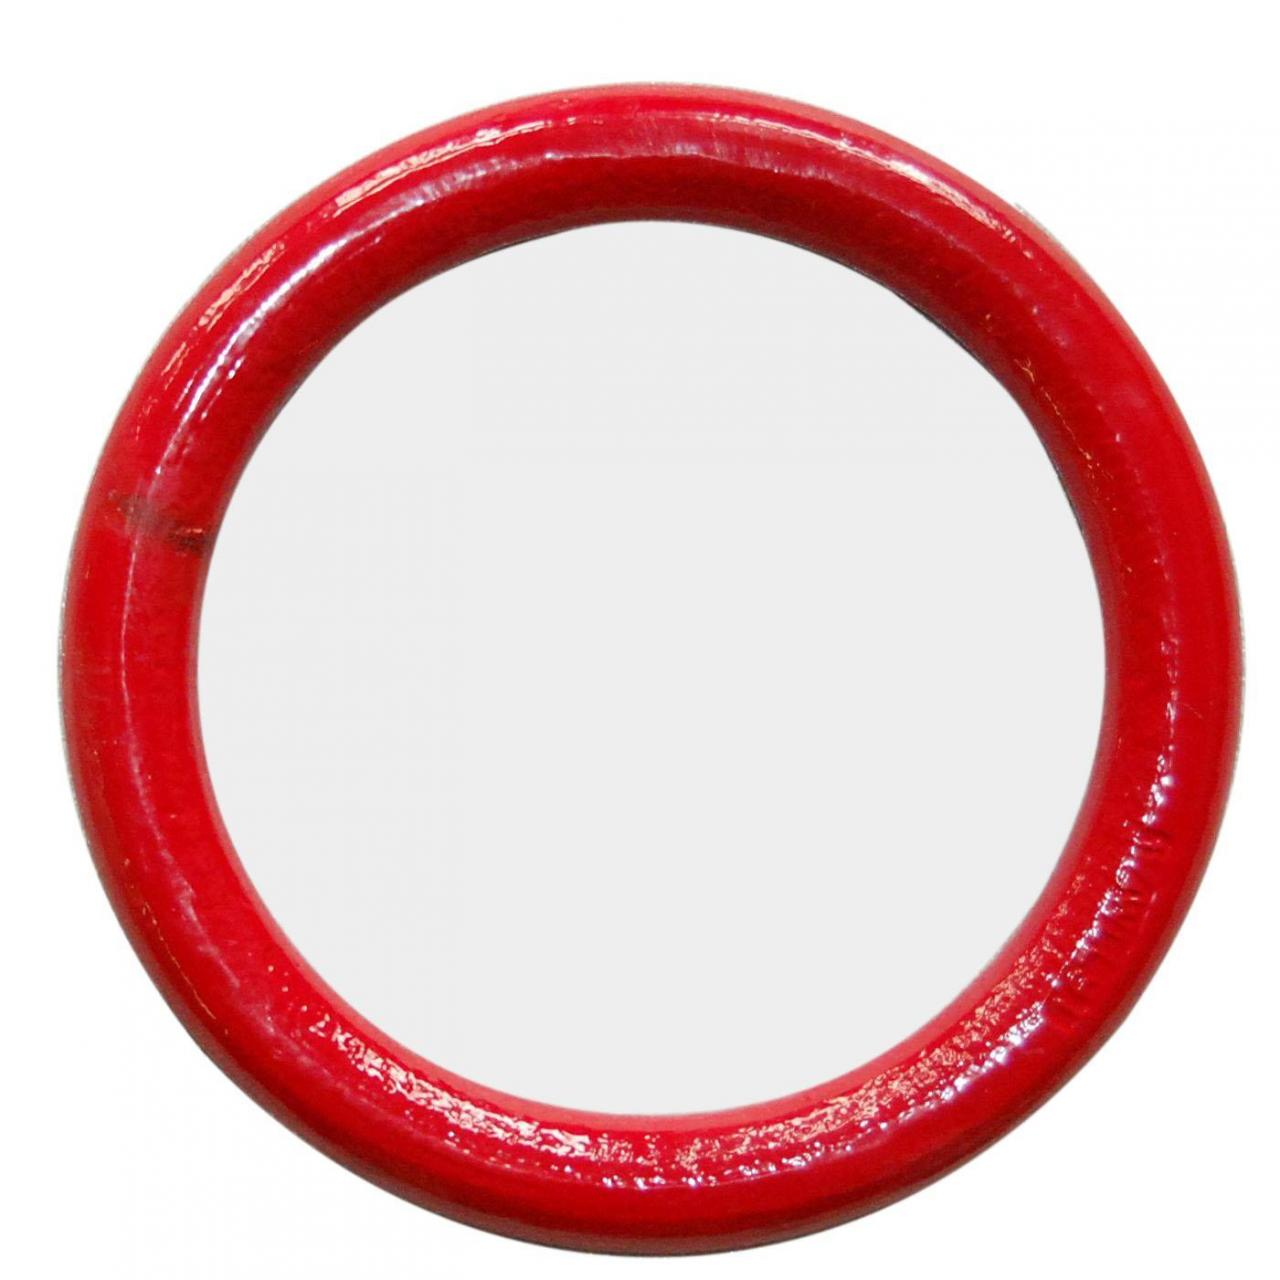 Wholesale RING LINK from china suppliers